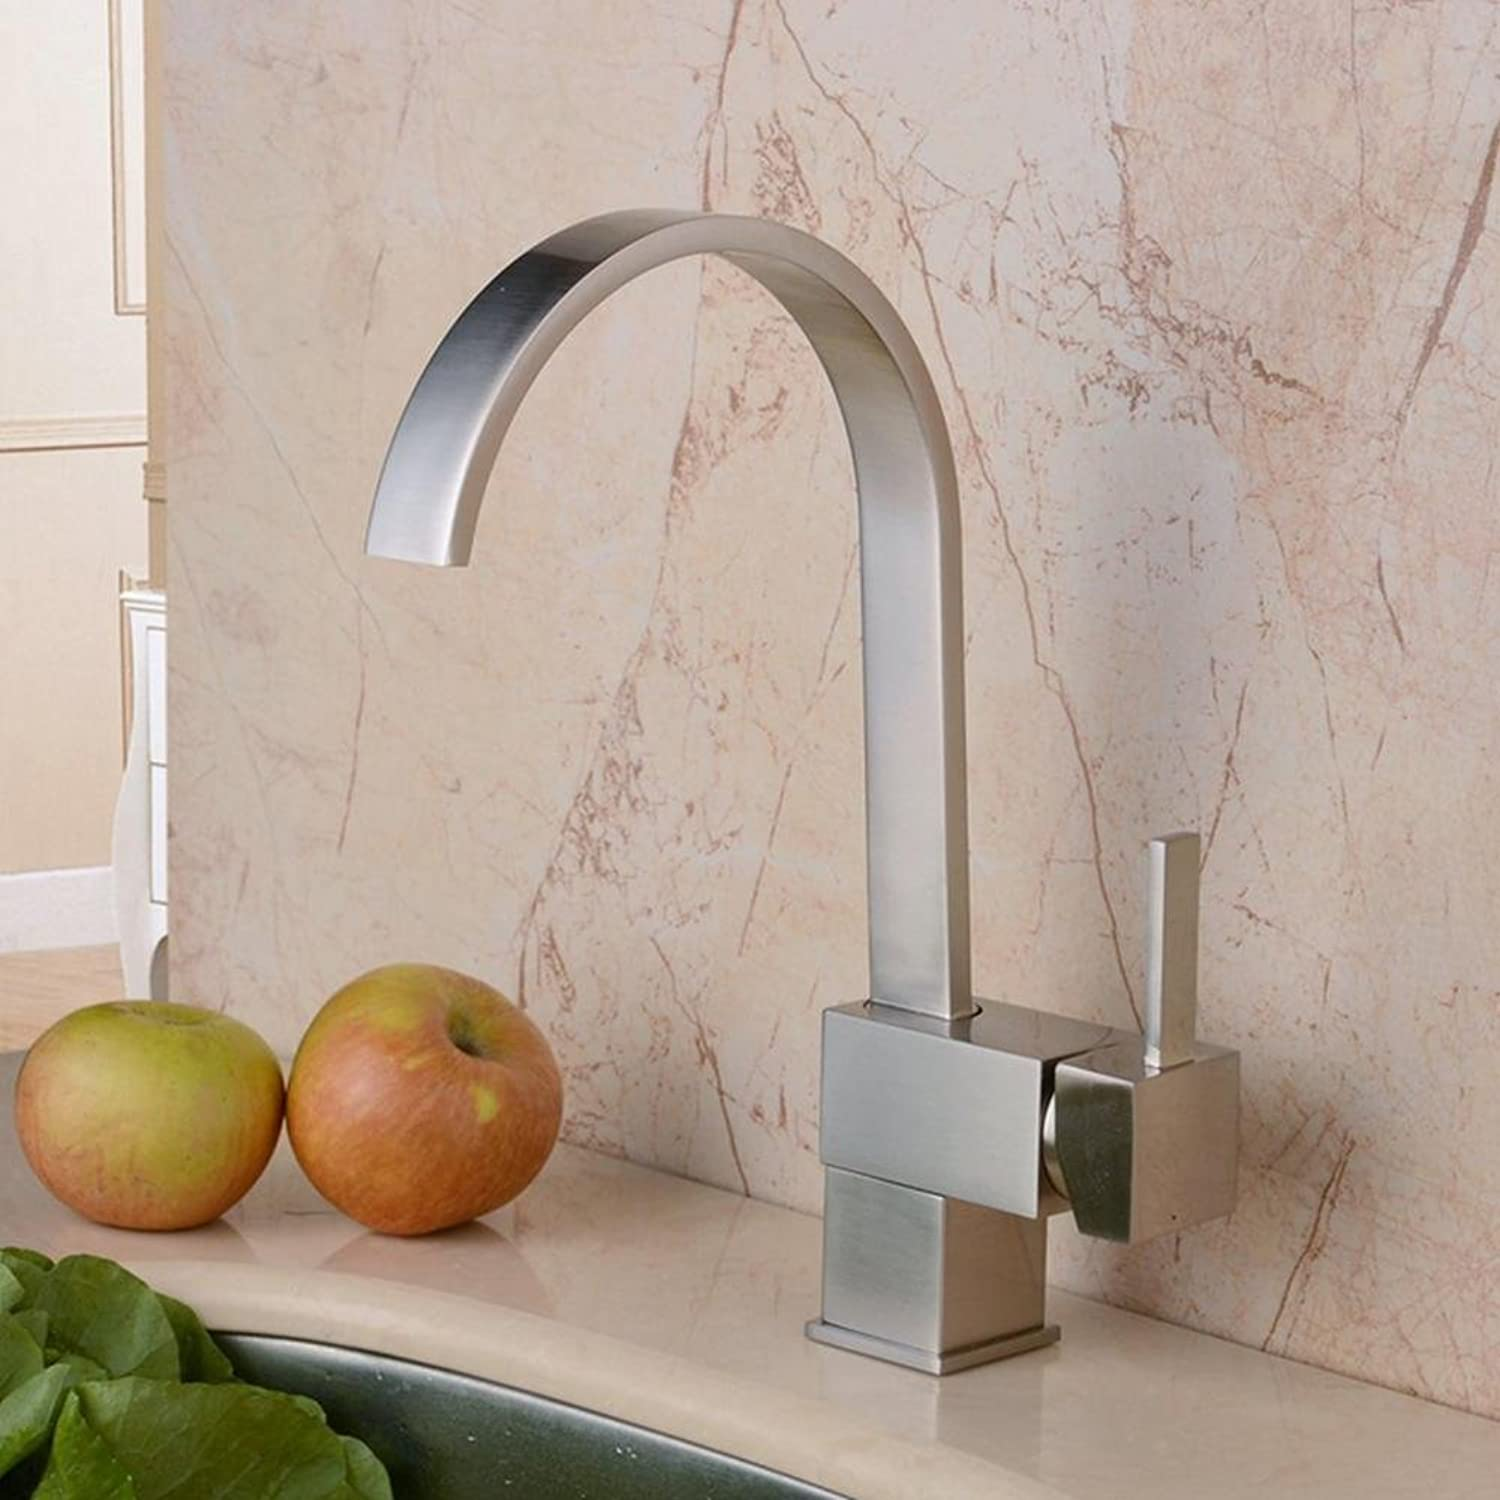 All Copper Kitchen Hot And Cold redating Mixing Faucet